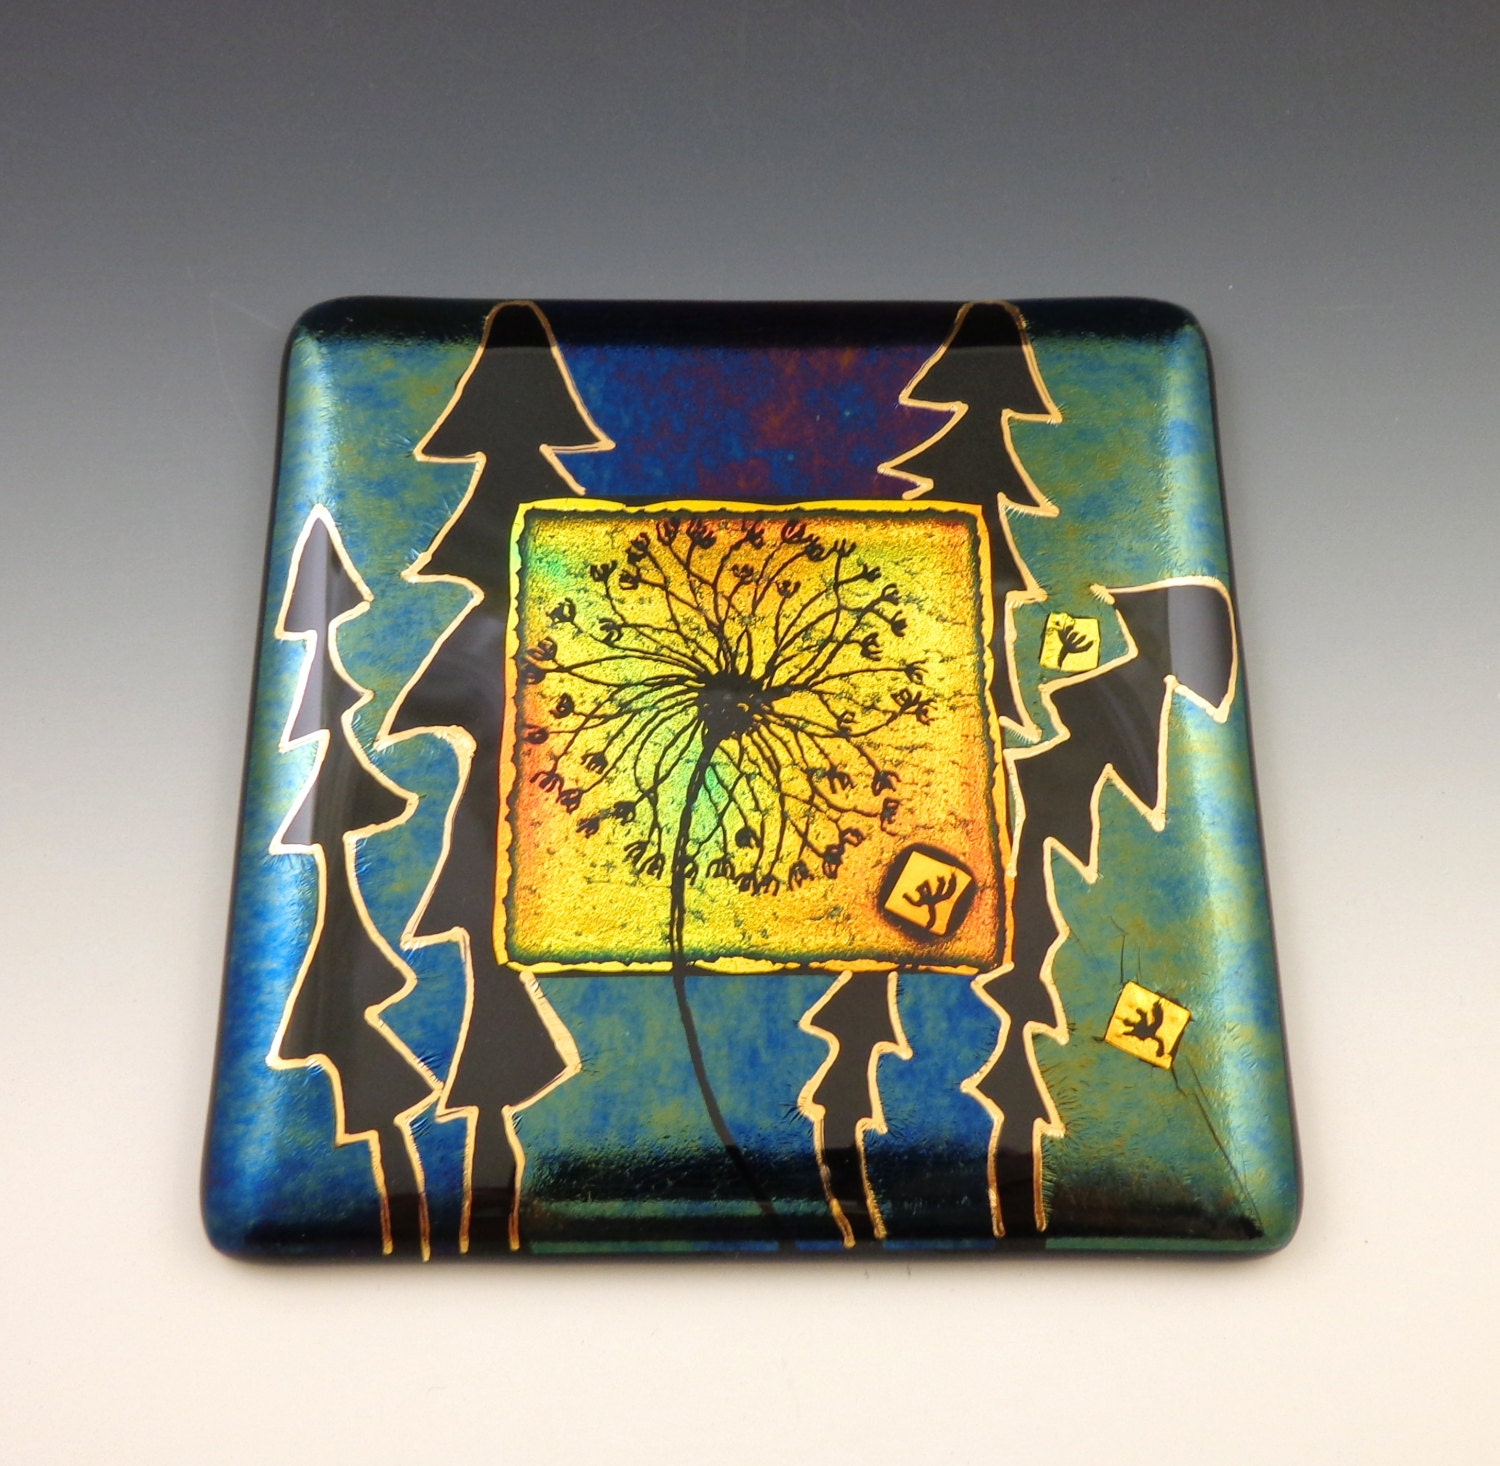 Fused Glass Wall Art: Seeded Dandelion Wall Tile Fused Glass Golden Red Dichroic